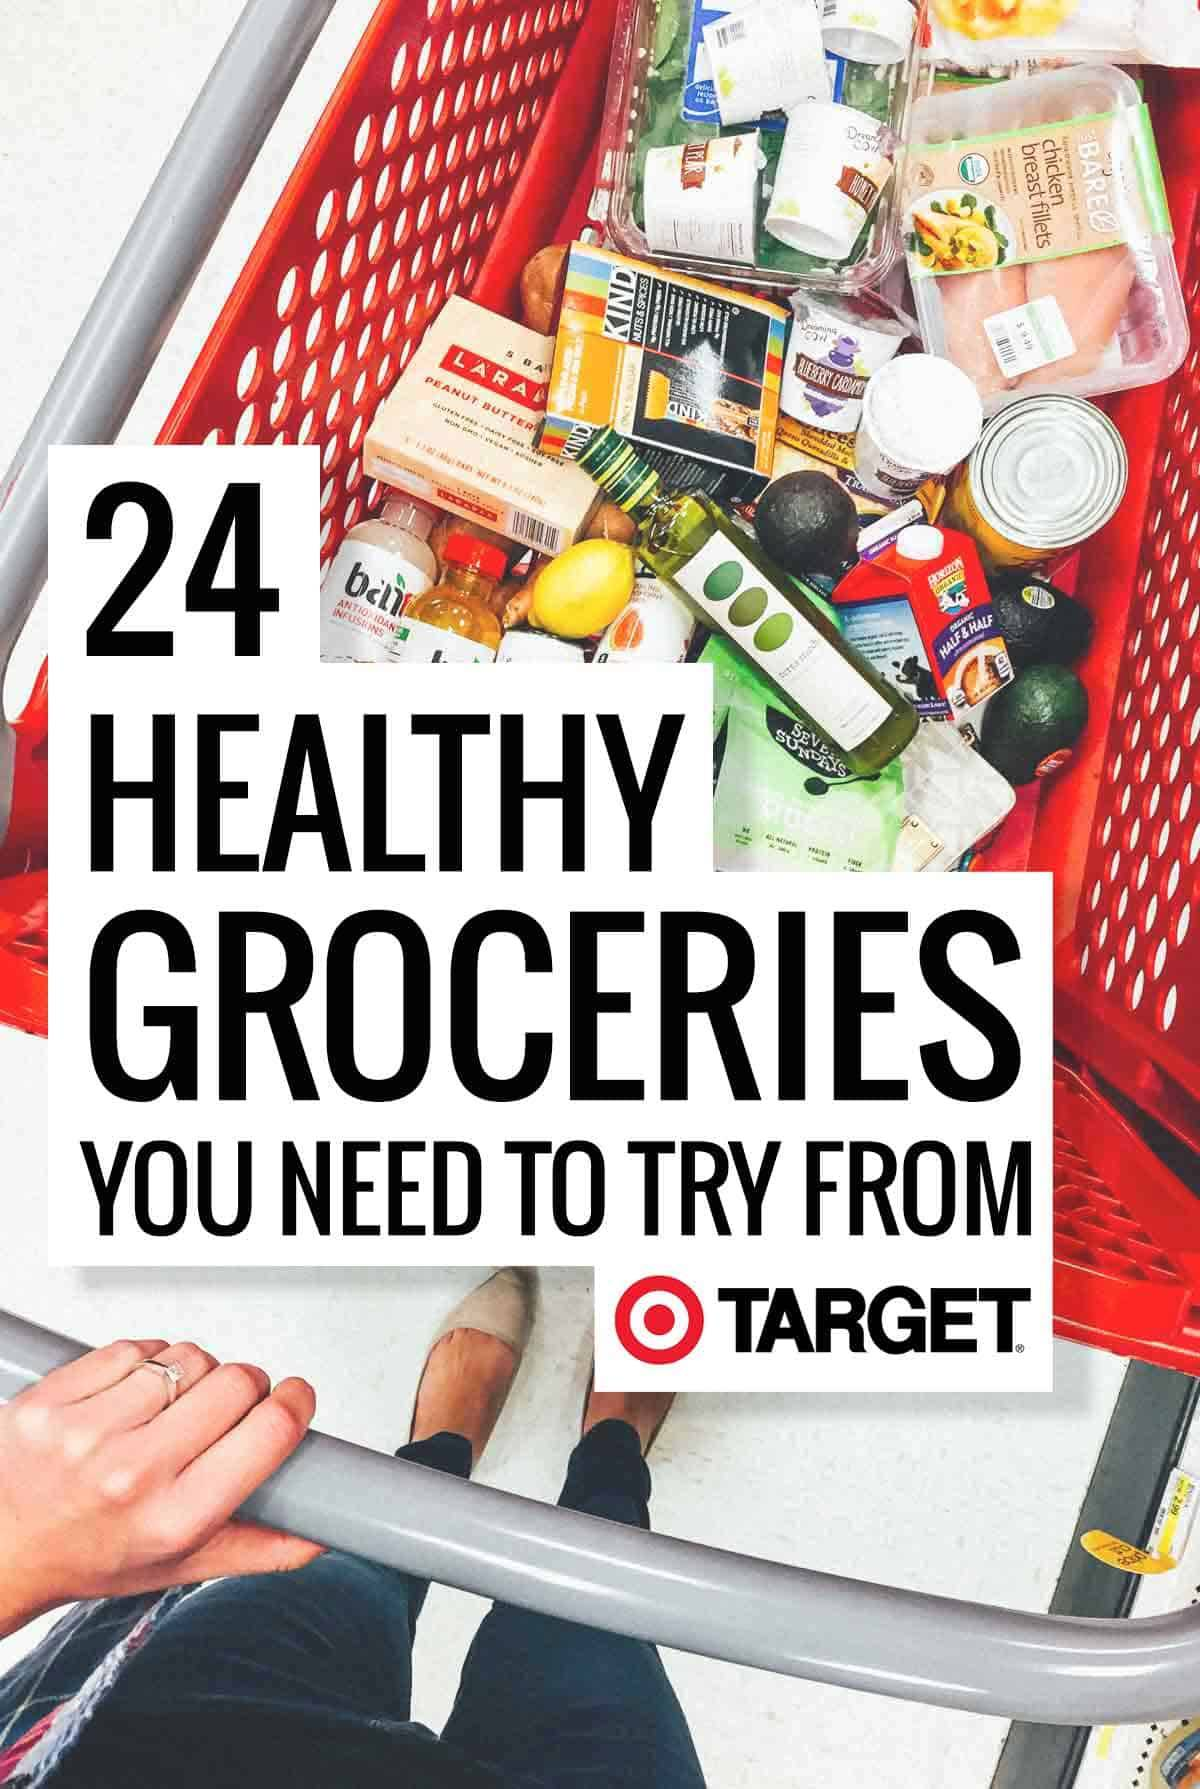 24 Healthy Groceries You Need To Try From Target! Organic real food snacks, refined sugar free pantry essentials, and more. This is a list of the most awesome healthy foods to buy at Target!